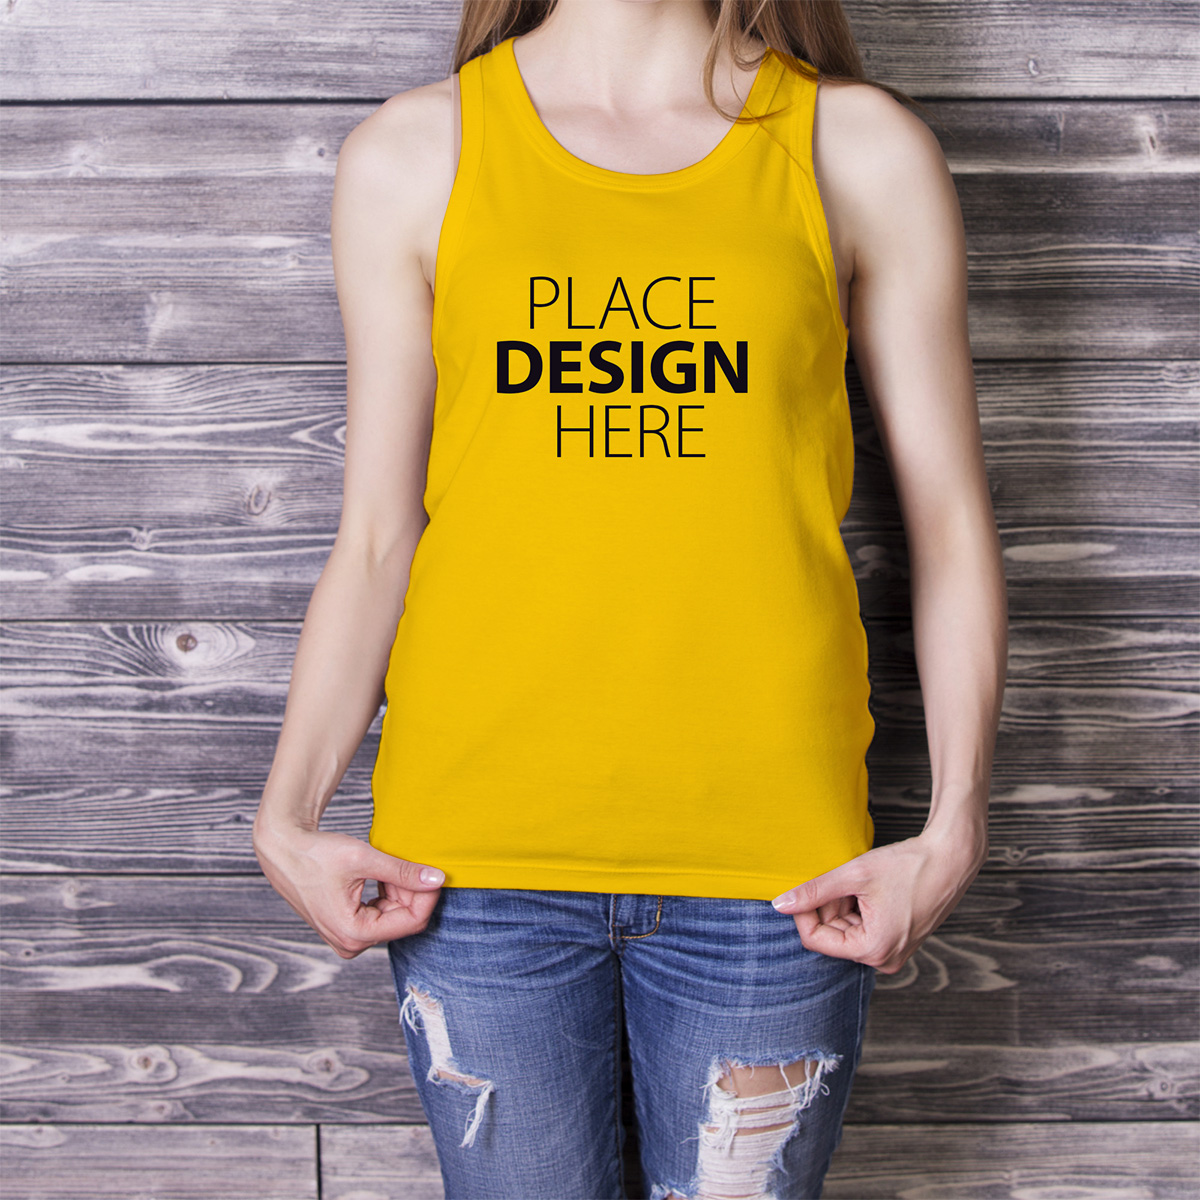 free-girl-in-tank-top-mock-up-psd-for-branding-2